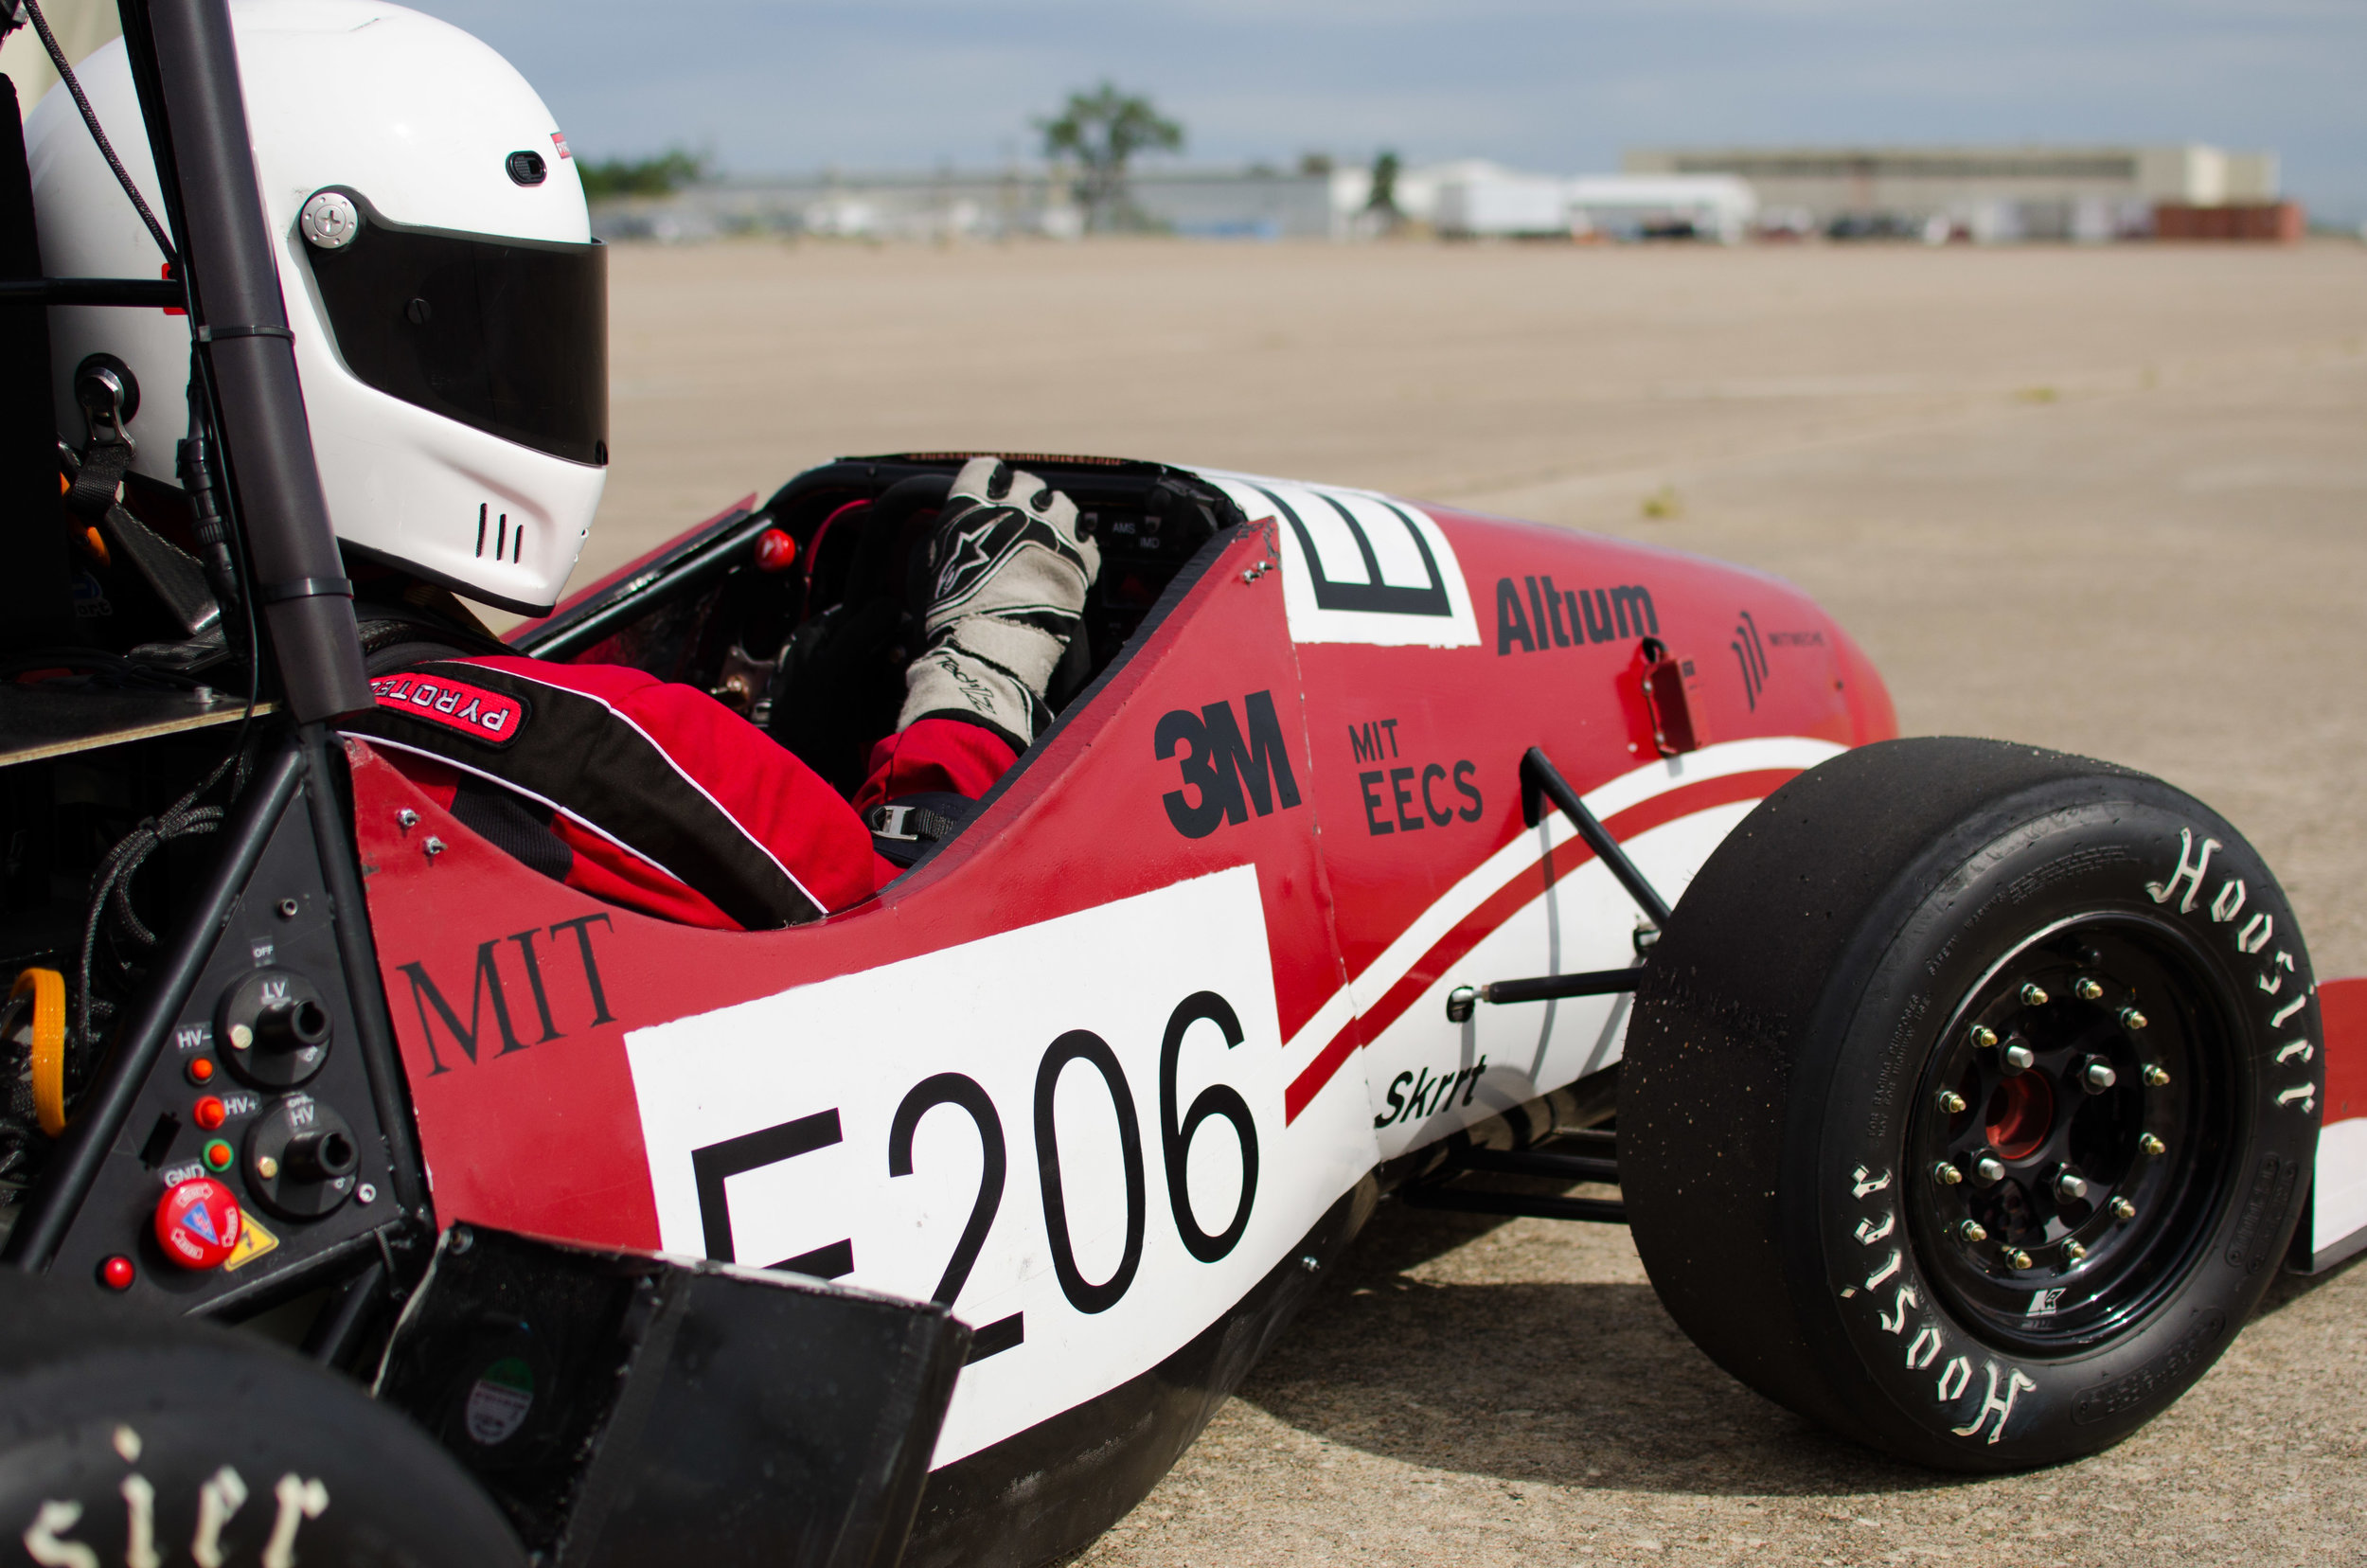 CORPORATE SPONSORSHIPS - In exchange for in-kind or cash donations, MIT Motorsports offers advertising, research, and recruiting opportunities for companies and nonprofits. Interested parties are encouraged to reach out to our executive board over email to inquire further.